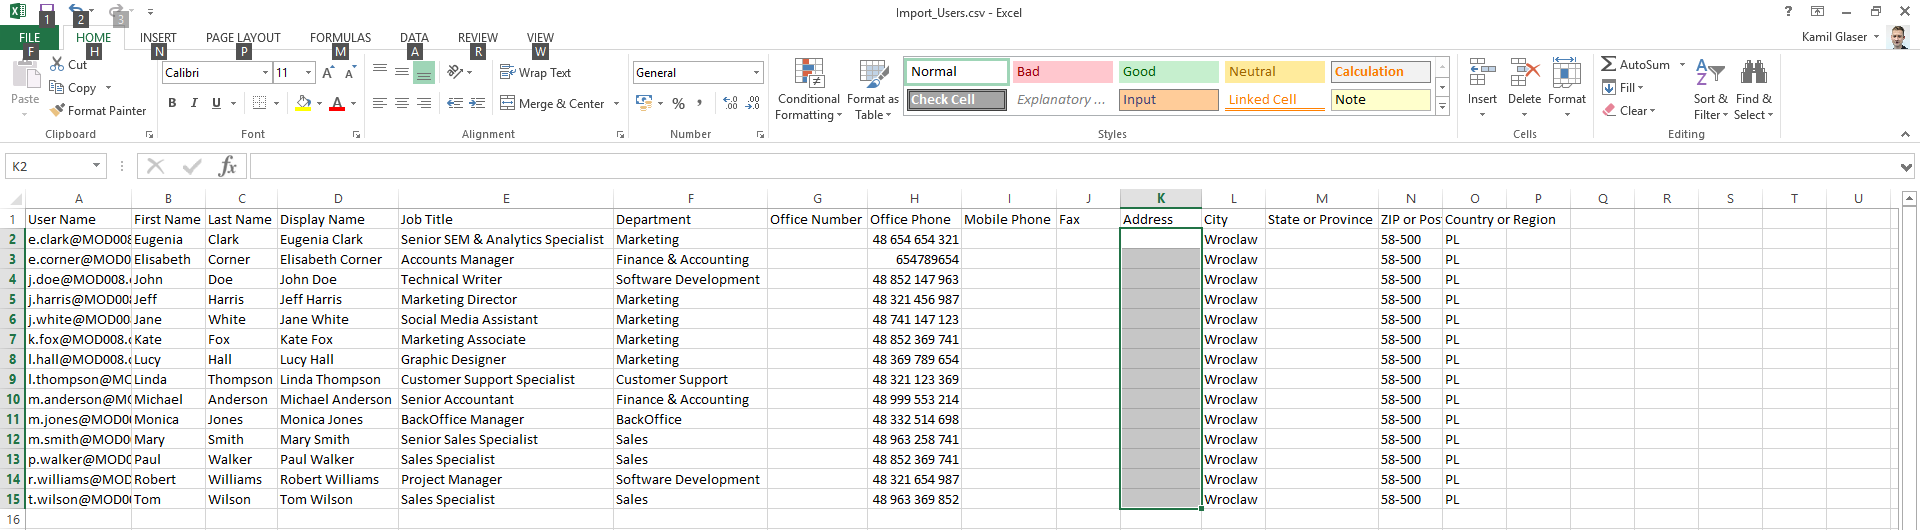 CSV-Datei: Excel-Tabelle